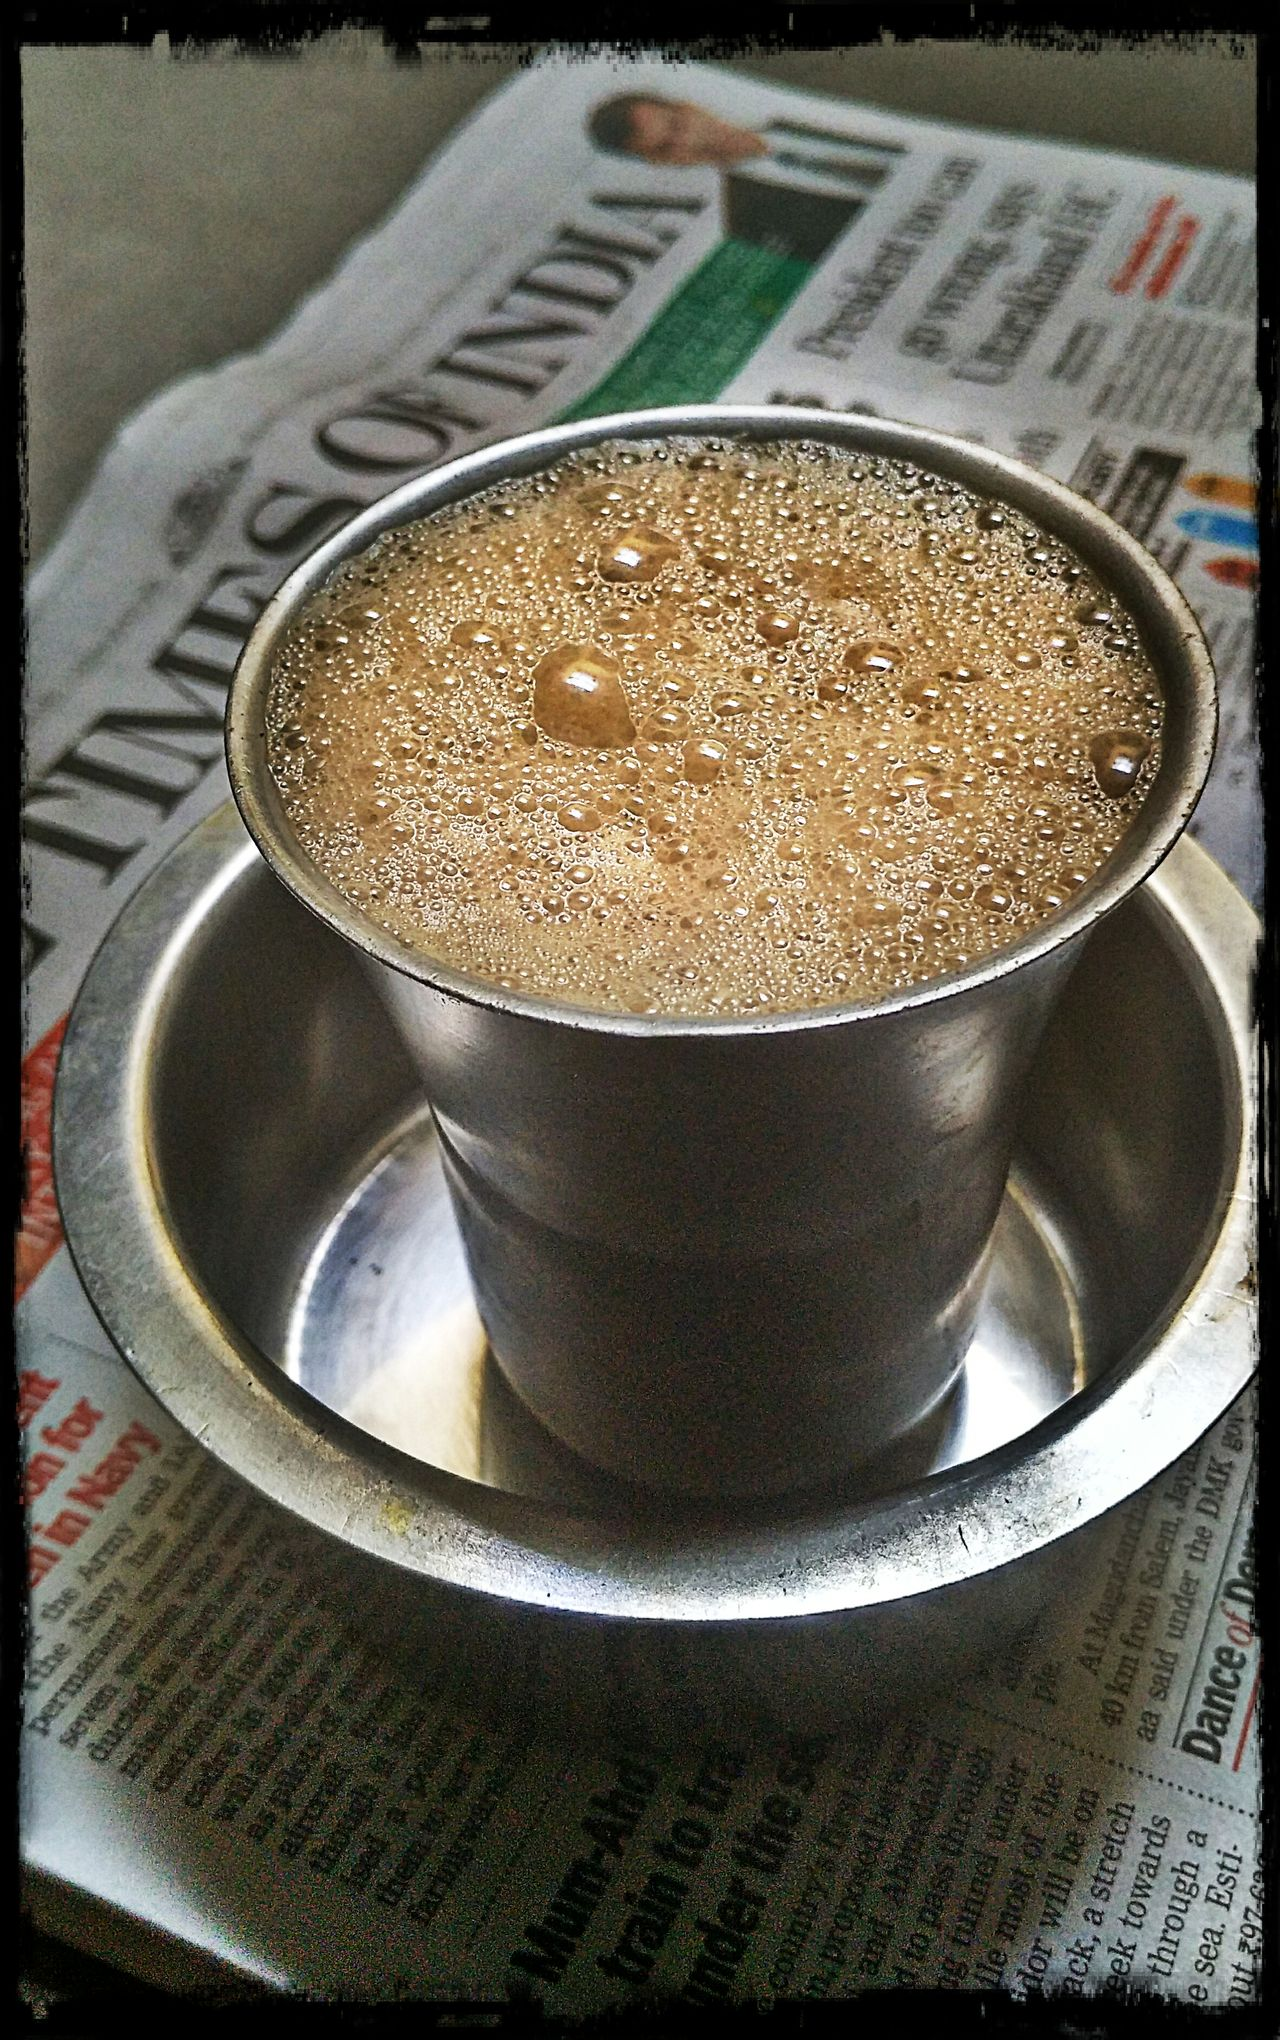 Activiser Aroma Brahmin Caffine Close-up Coffee Filtercofee Filtercoffee Focus On Foreground Freshness Goodmorning Indian Food IndianCooking Indiancountryside Morning Morning Rituals No People Refreshing Refreshment Refreshment Selective Focus Start Still Life